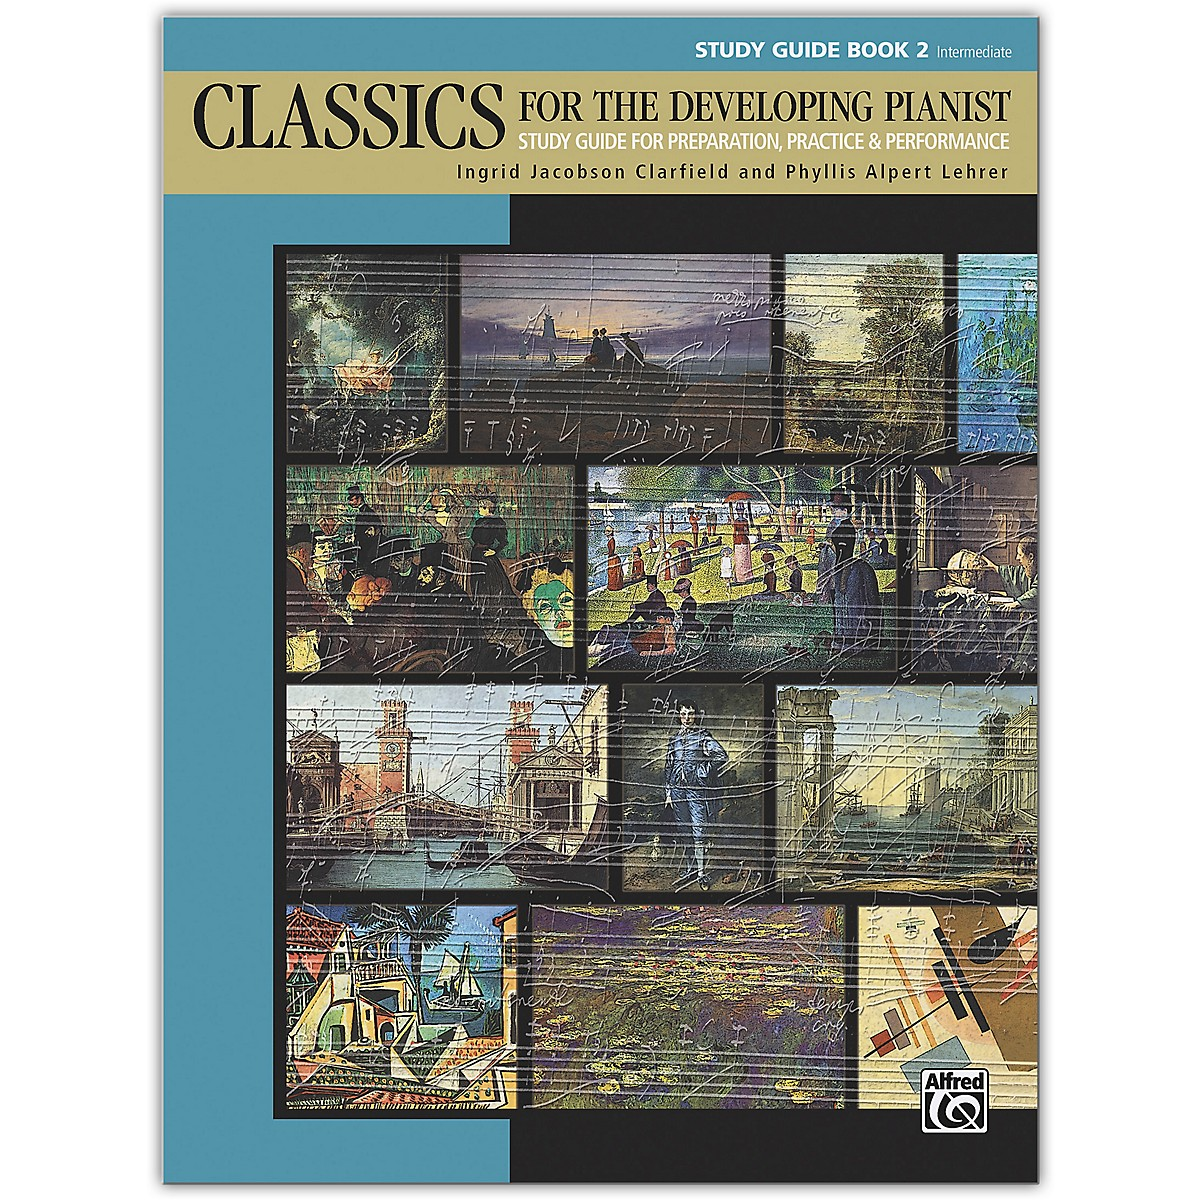 Alfred Classics for the Developing Pianist, Study Guide Book 2 Intermediate